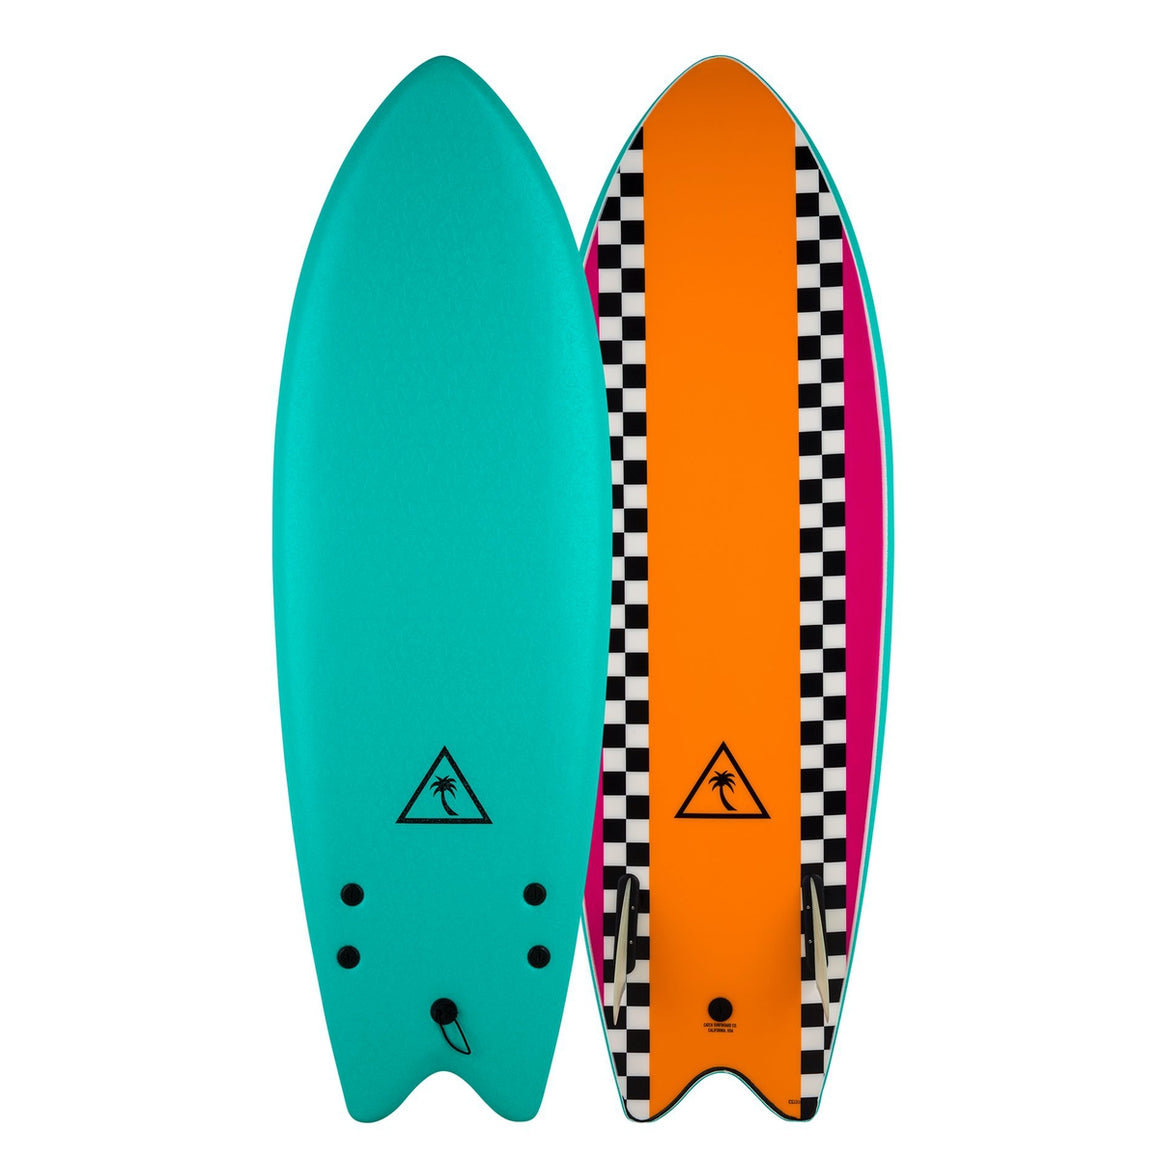 Catch Surf Heritage 5'6 Retro Fish - Twin Fin - Turquoise/Orange 20